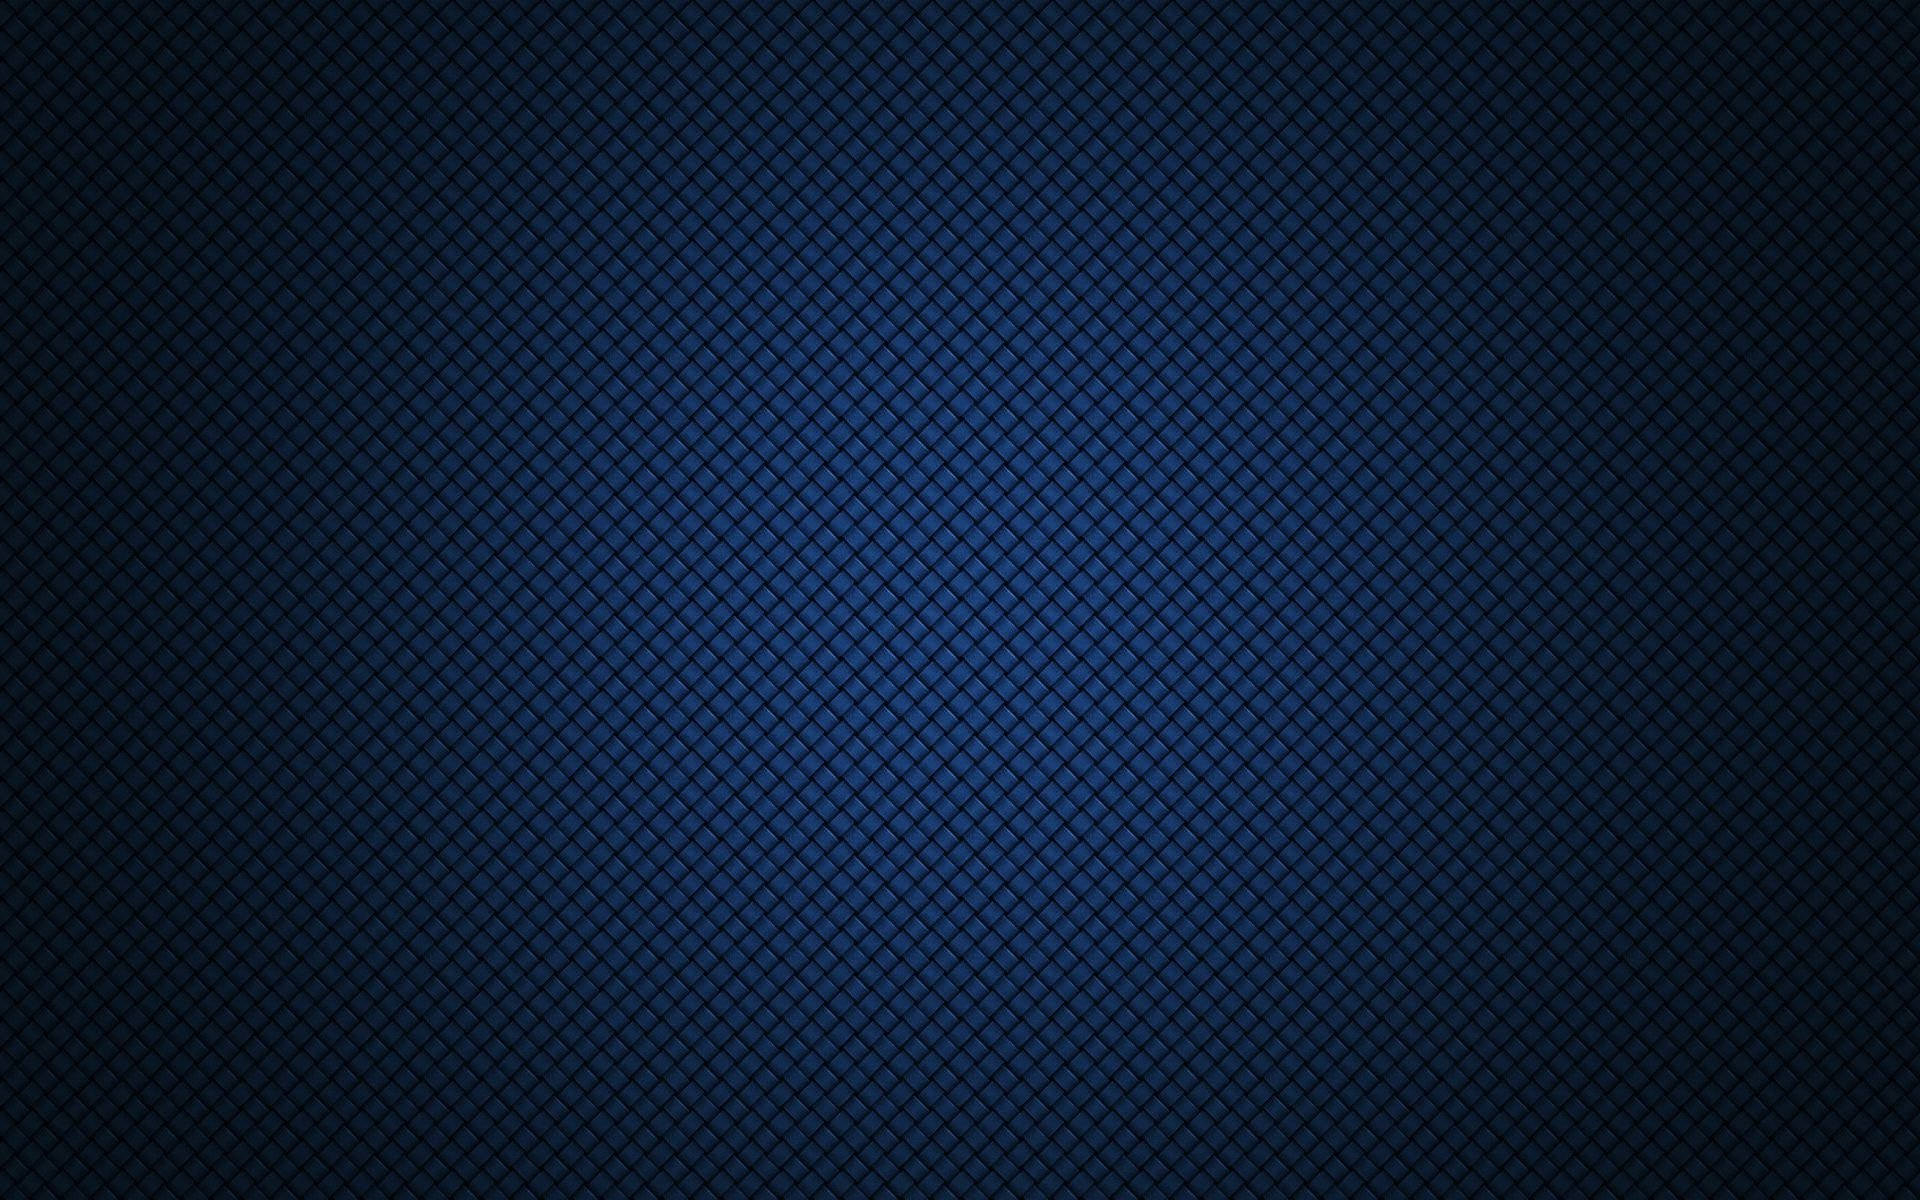 Blue HD Wallpapers - WallpaperSafari